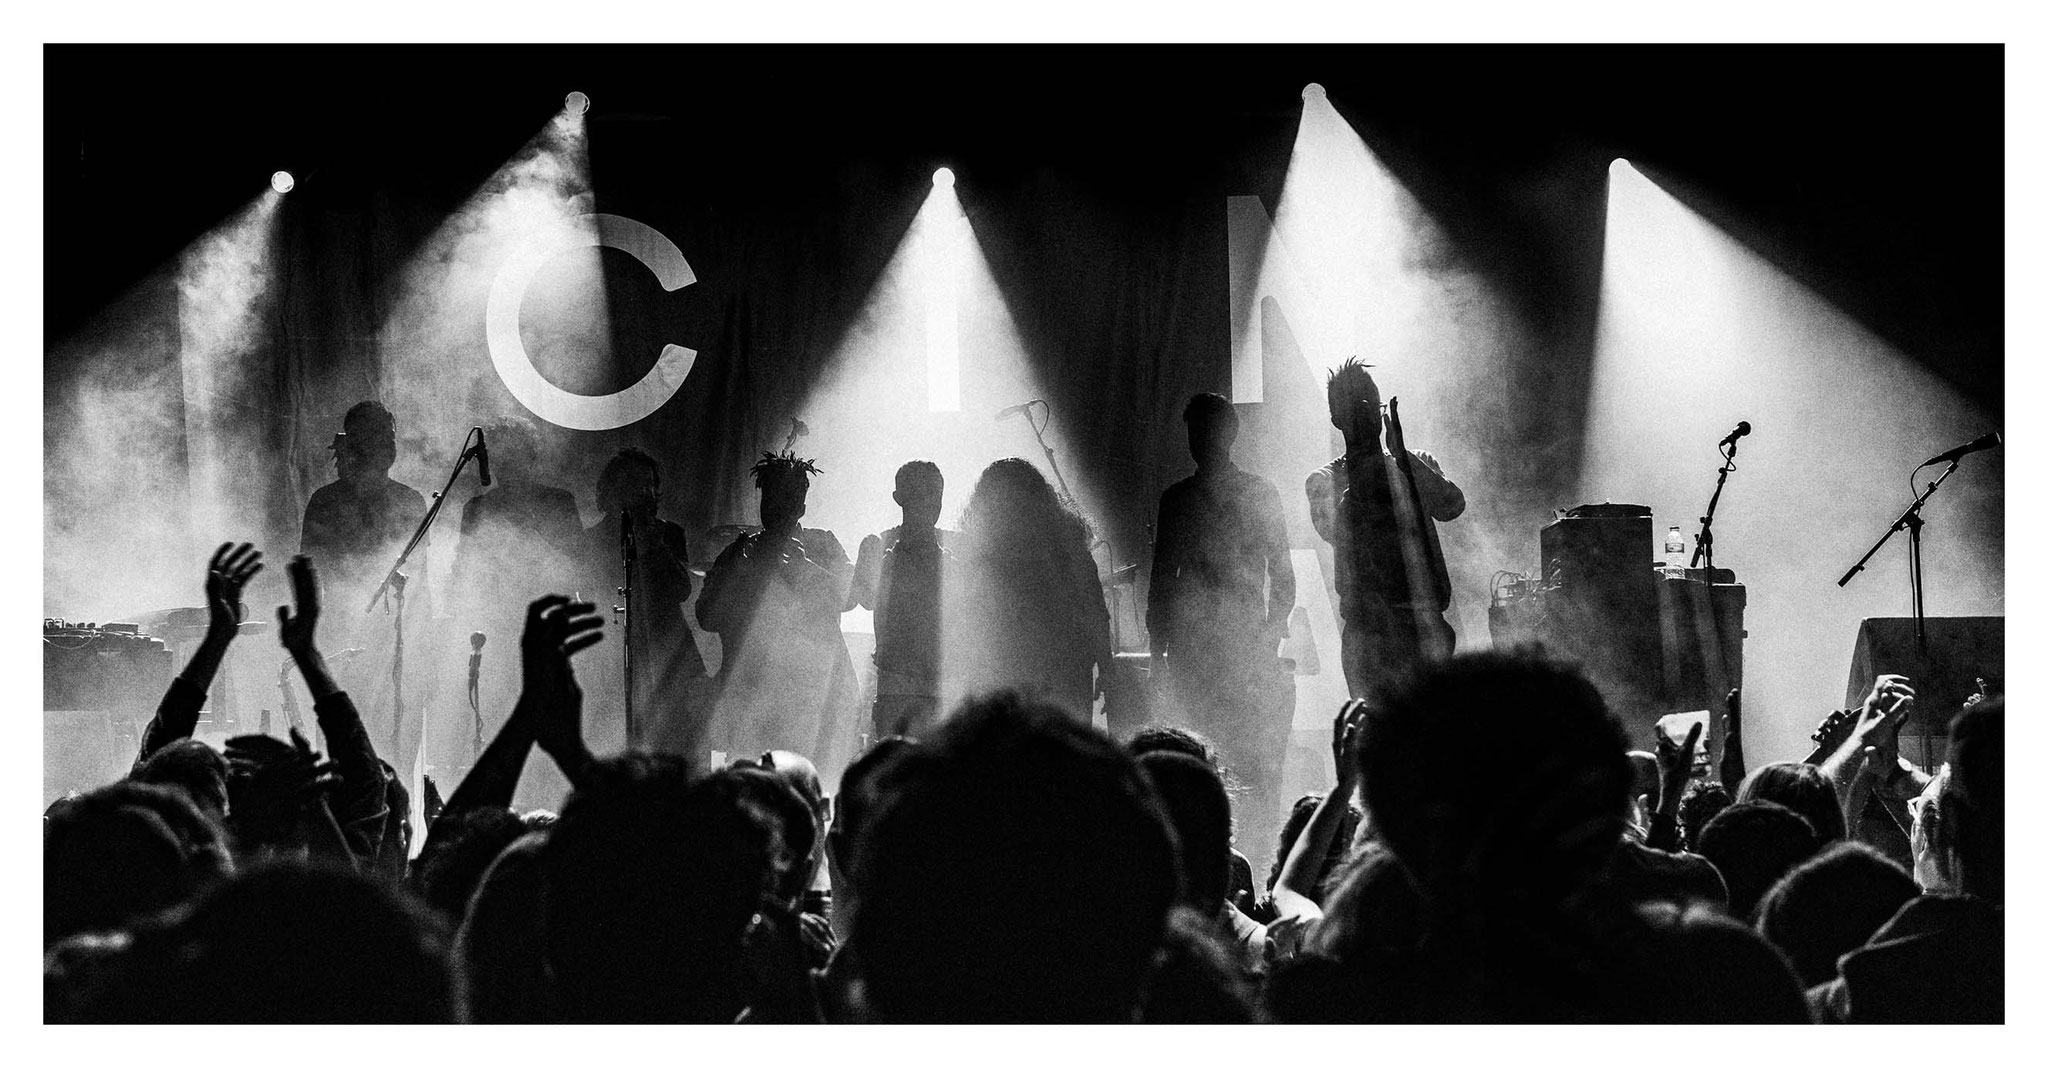 Dezember 2019: Cinematic Orchestra, Thomas Kalscheid